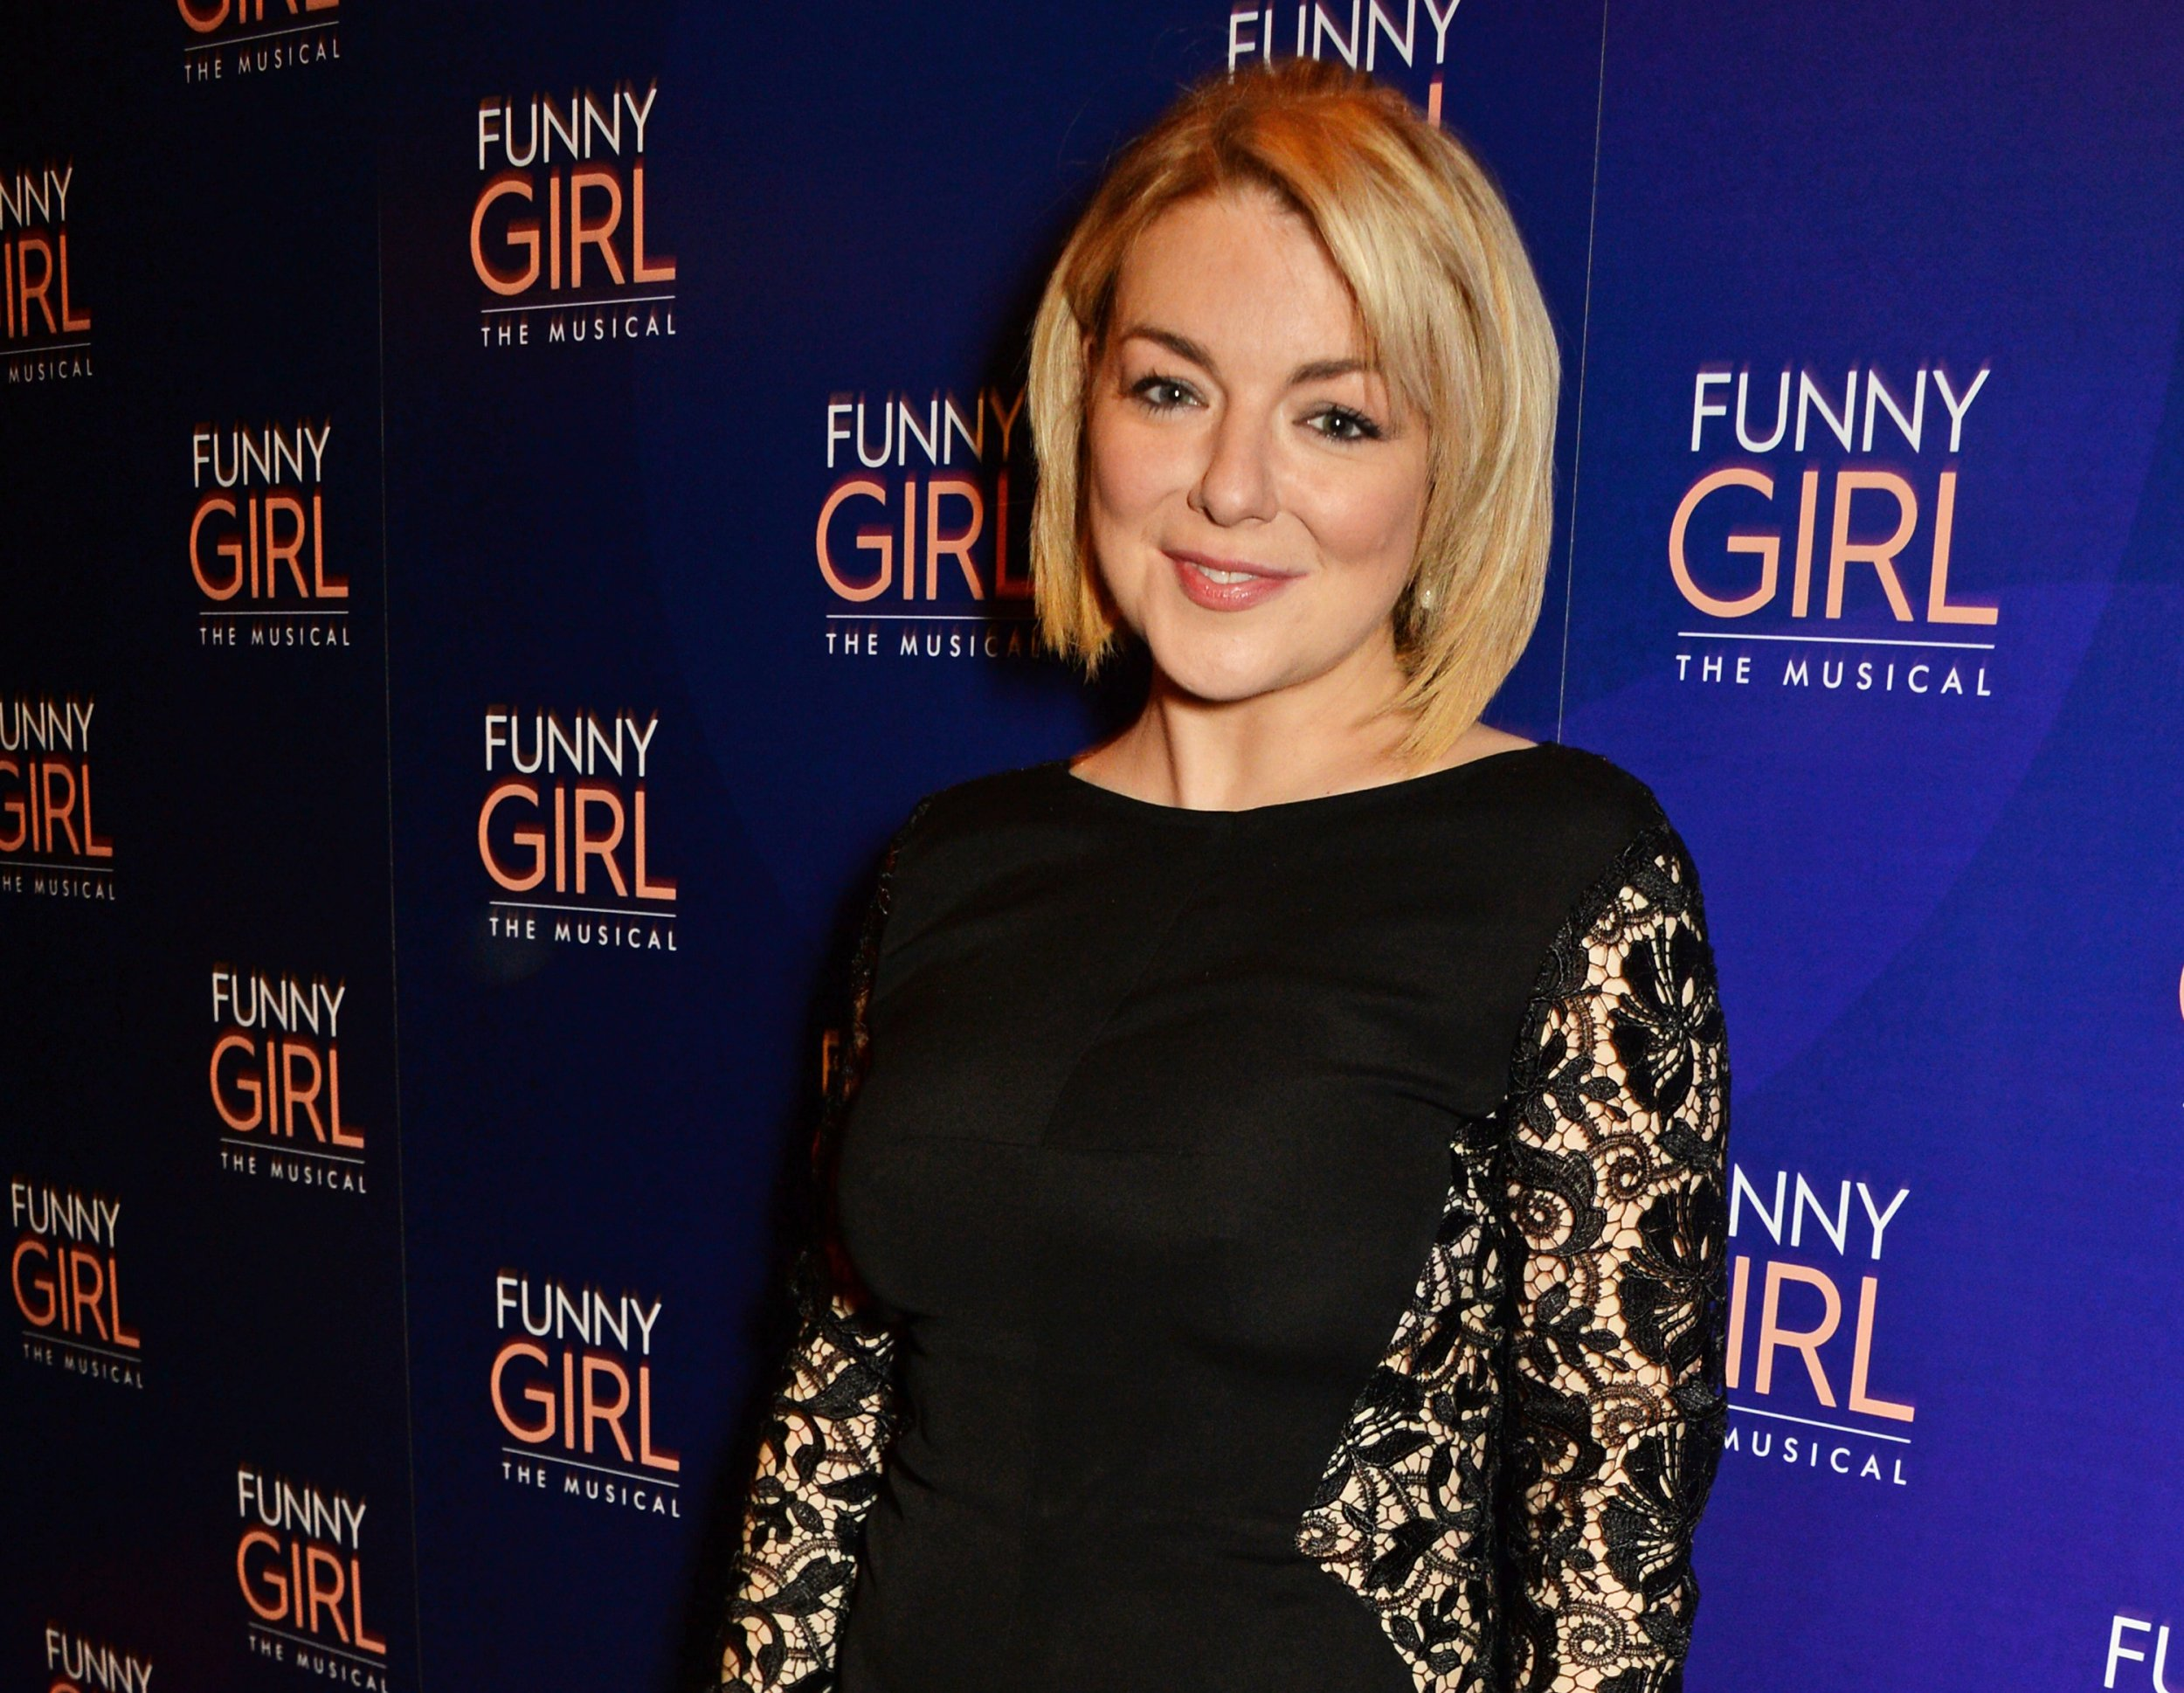 Is Sheridan Smith returning to Funny Girl after her extended break?